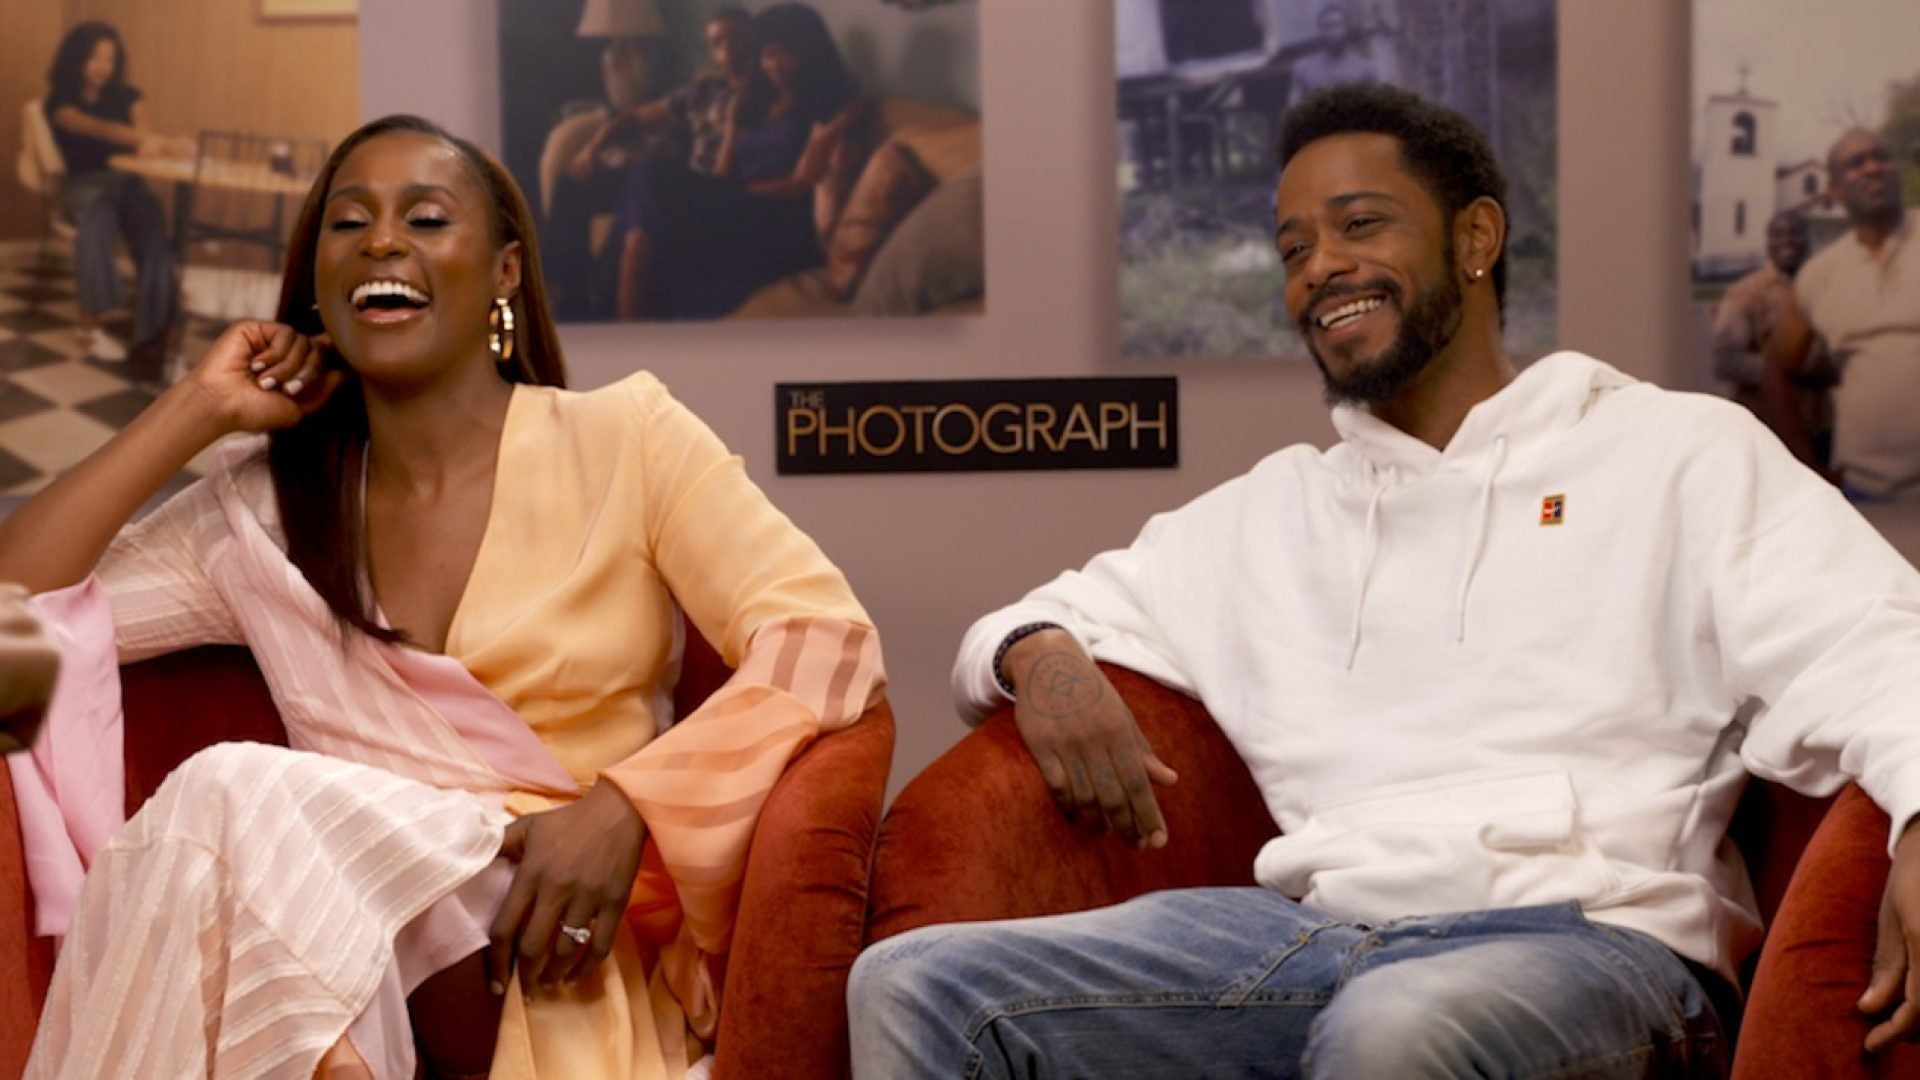 'Photograph' Stars Issa Rae And Lakeith Stanfield Share Problems With Entertainment Journalism